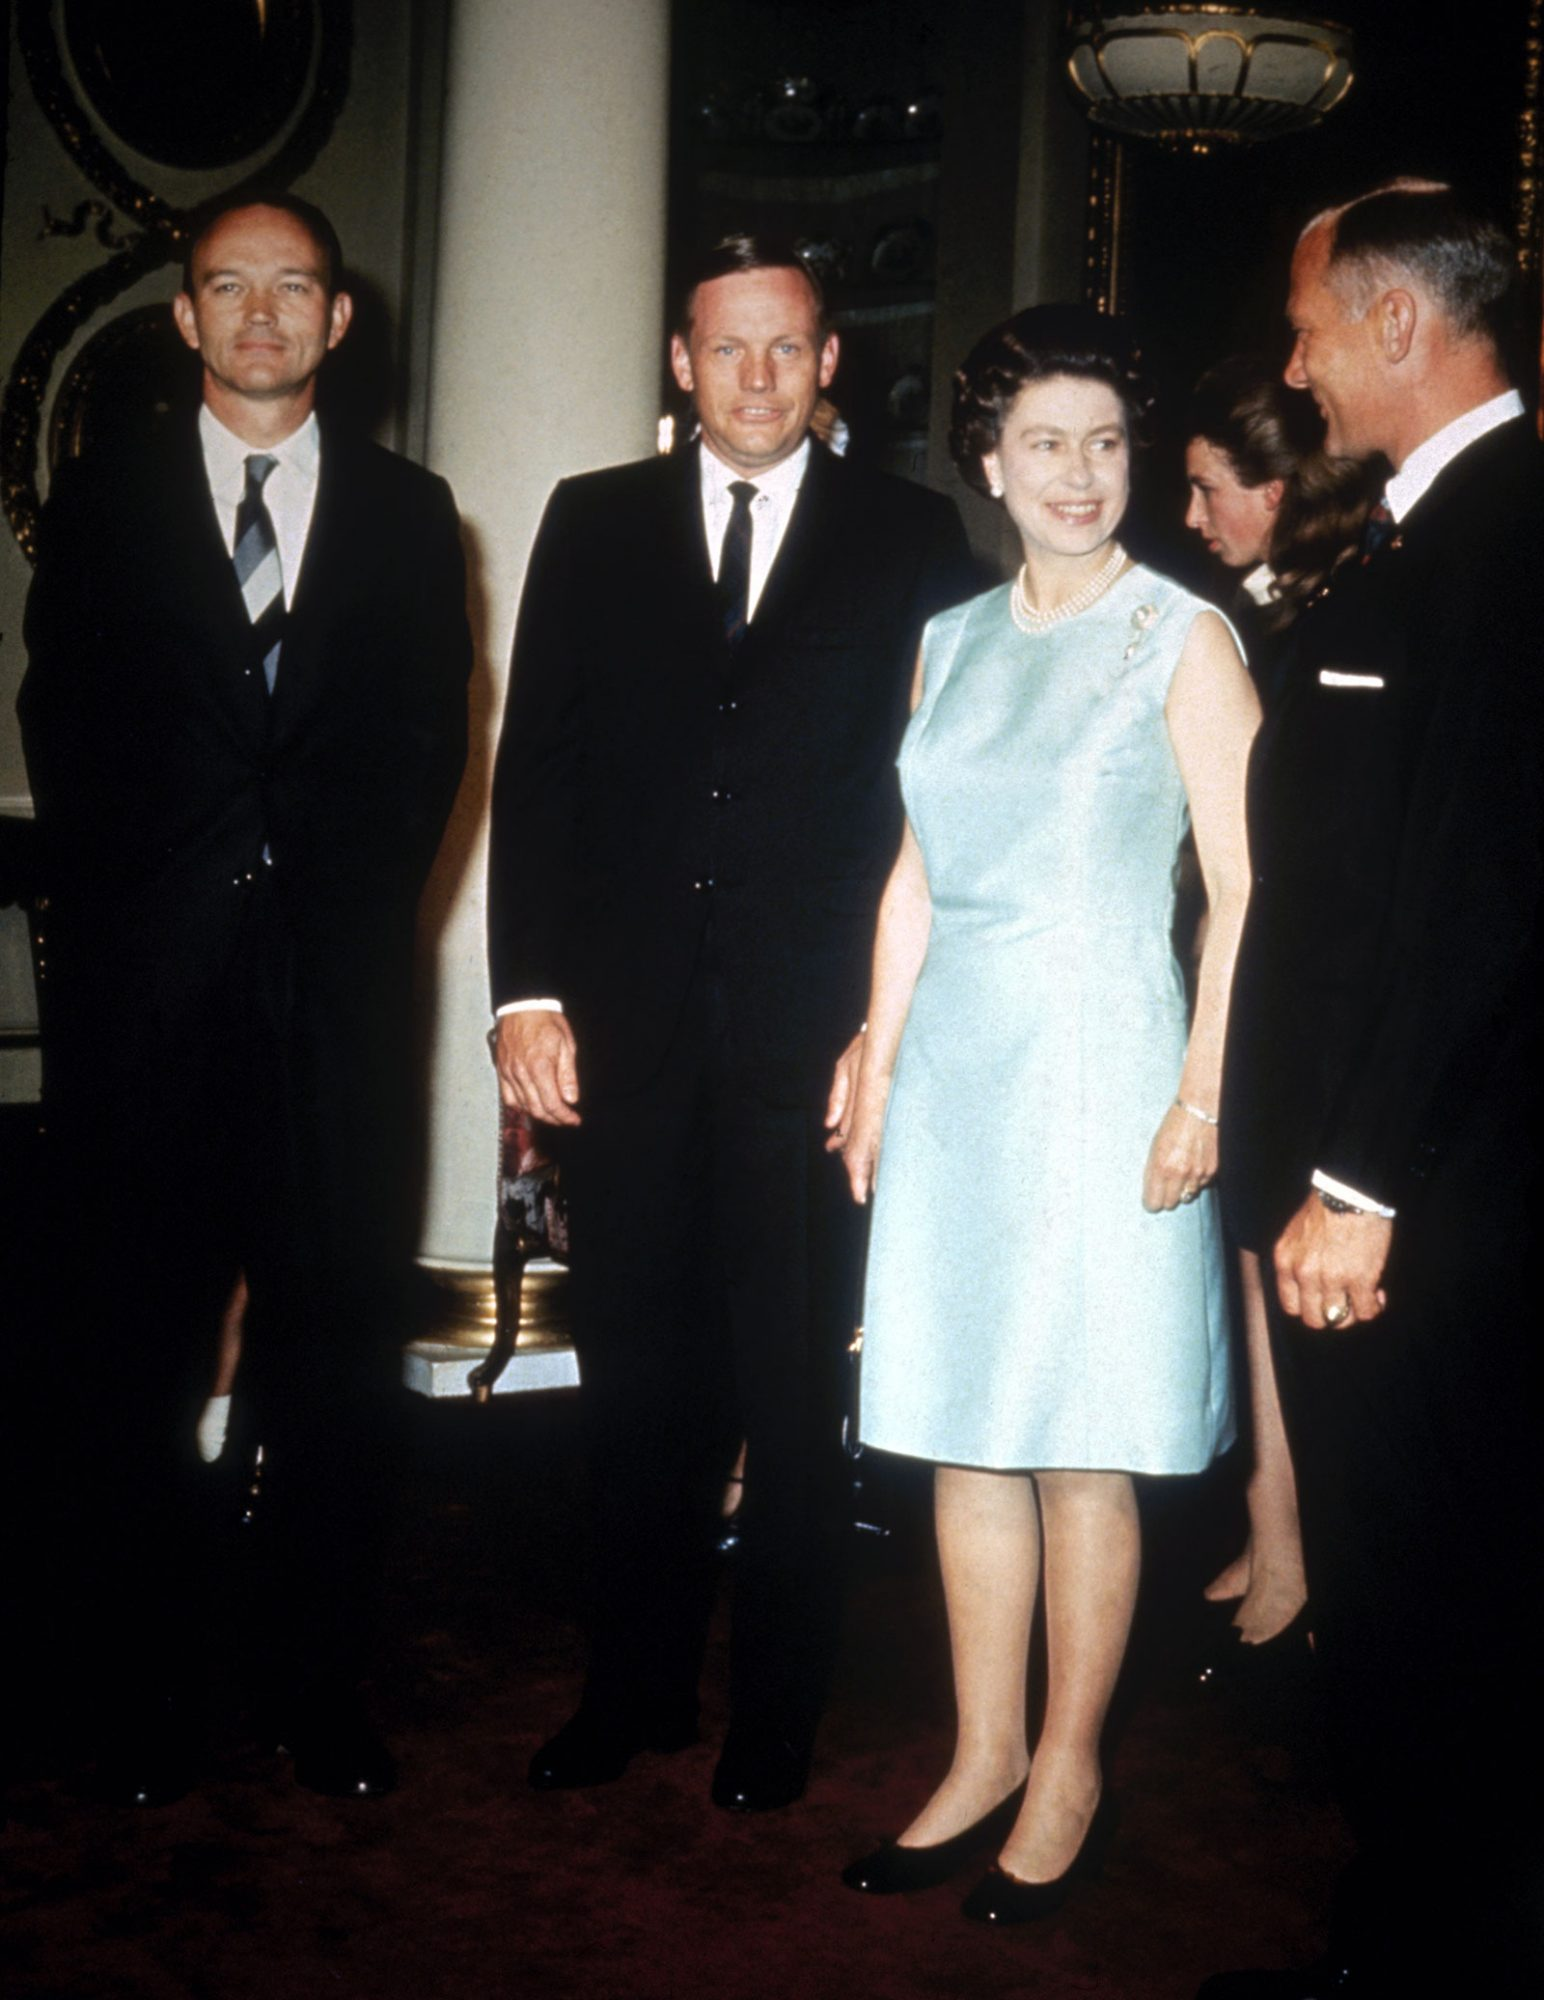 ueen Elizabeth II with the Apollo 11 astronauts at Buckingham Palace, 1970. Left to right: Michael Collins, Neil Armstrong and Edwin 'Buzz' Aldrin.